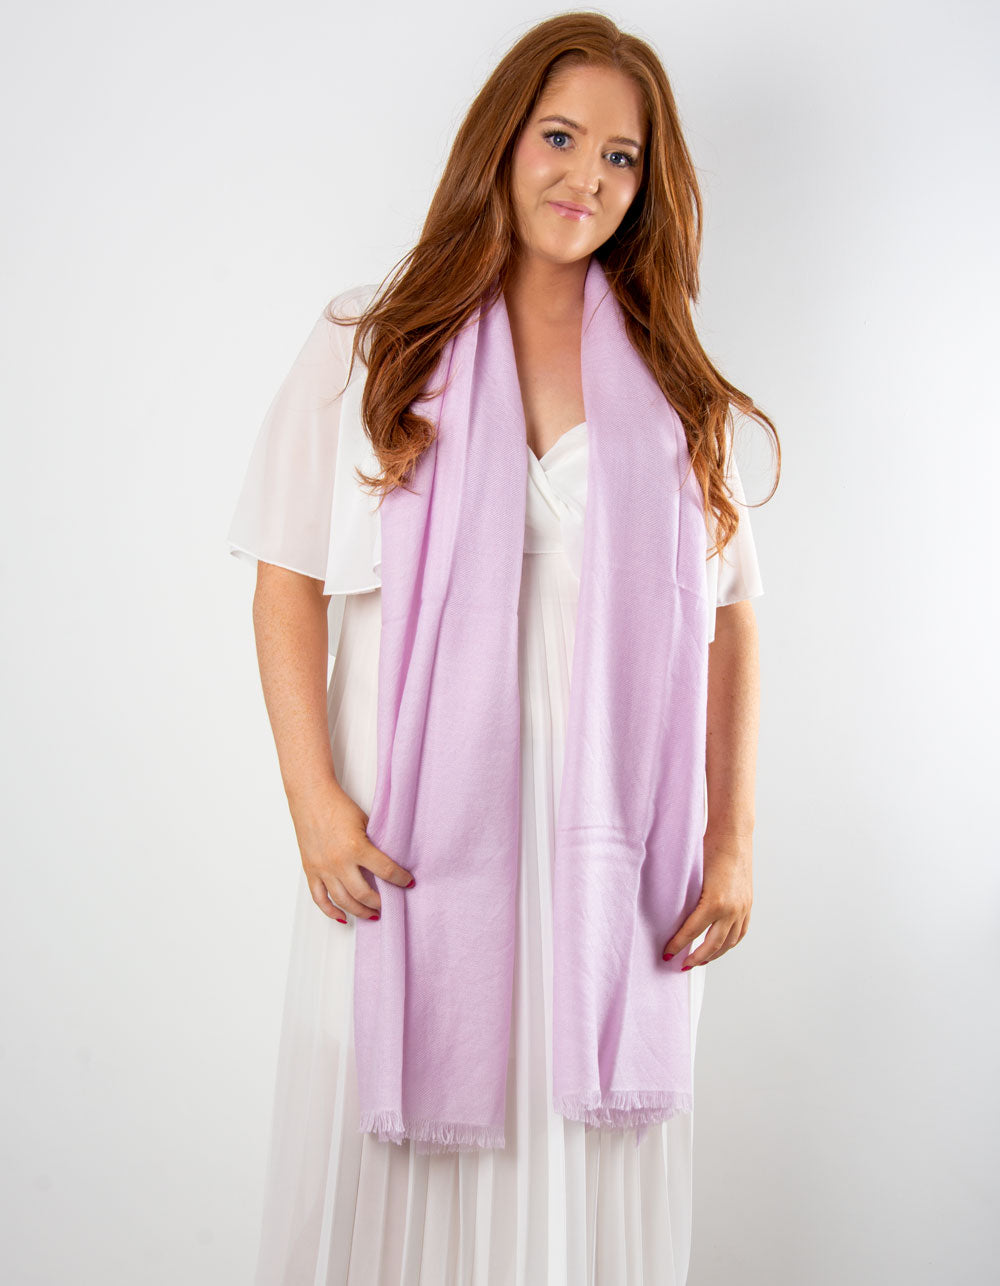 an image showing a cashmere wedding pashmina in lilac